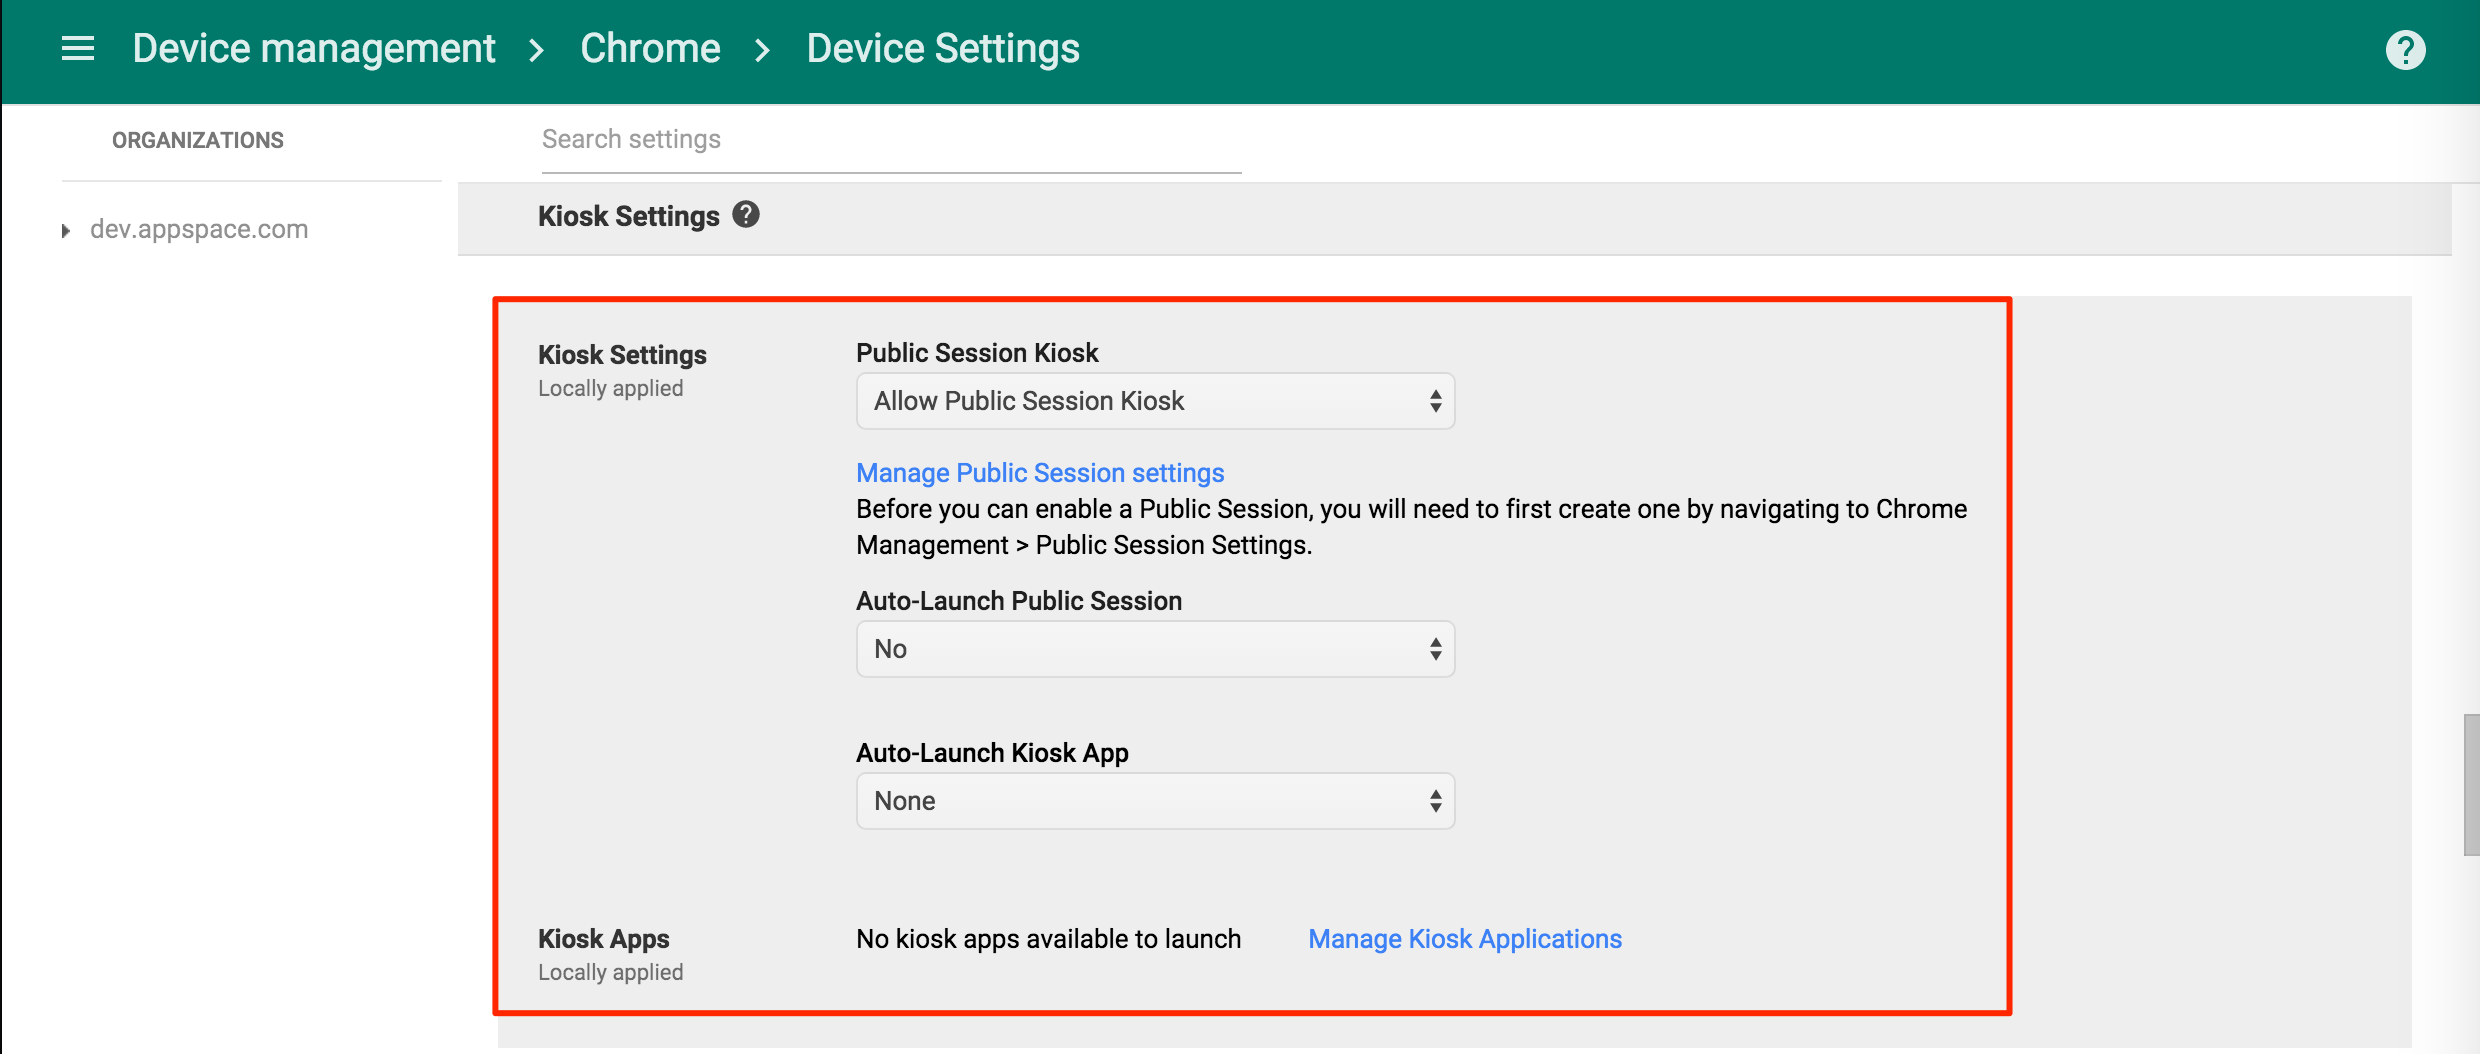 Configuring Chrome OS devices with Google Chrome Device